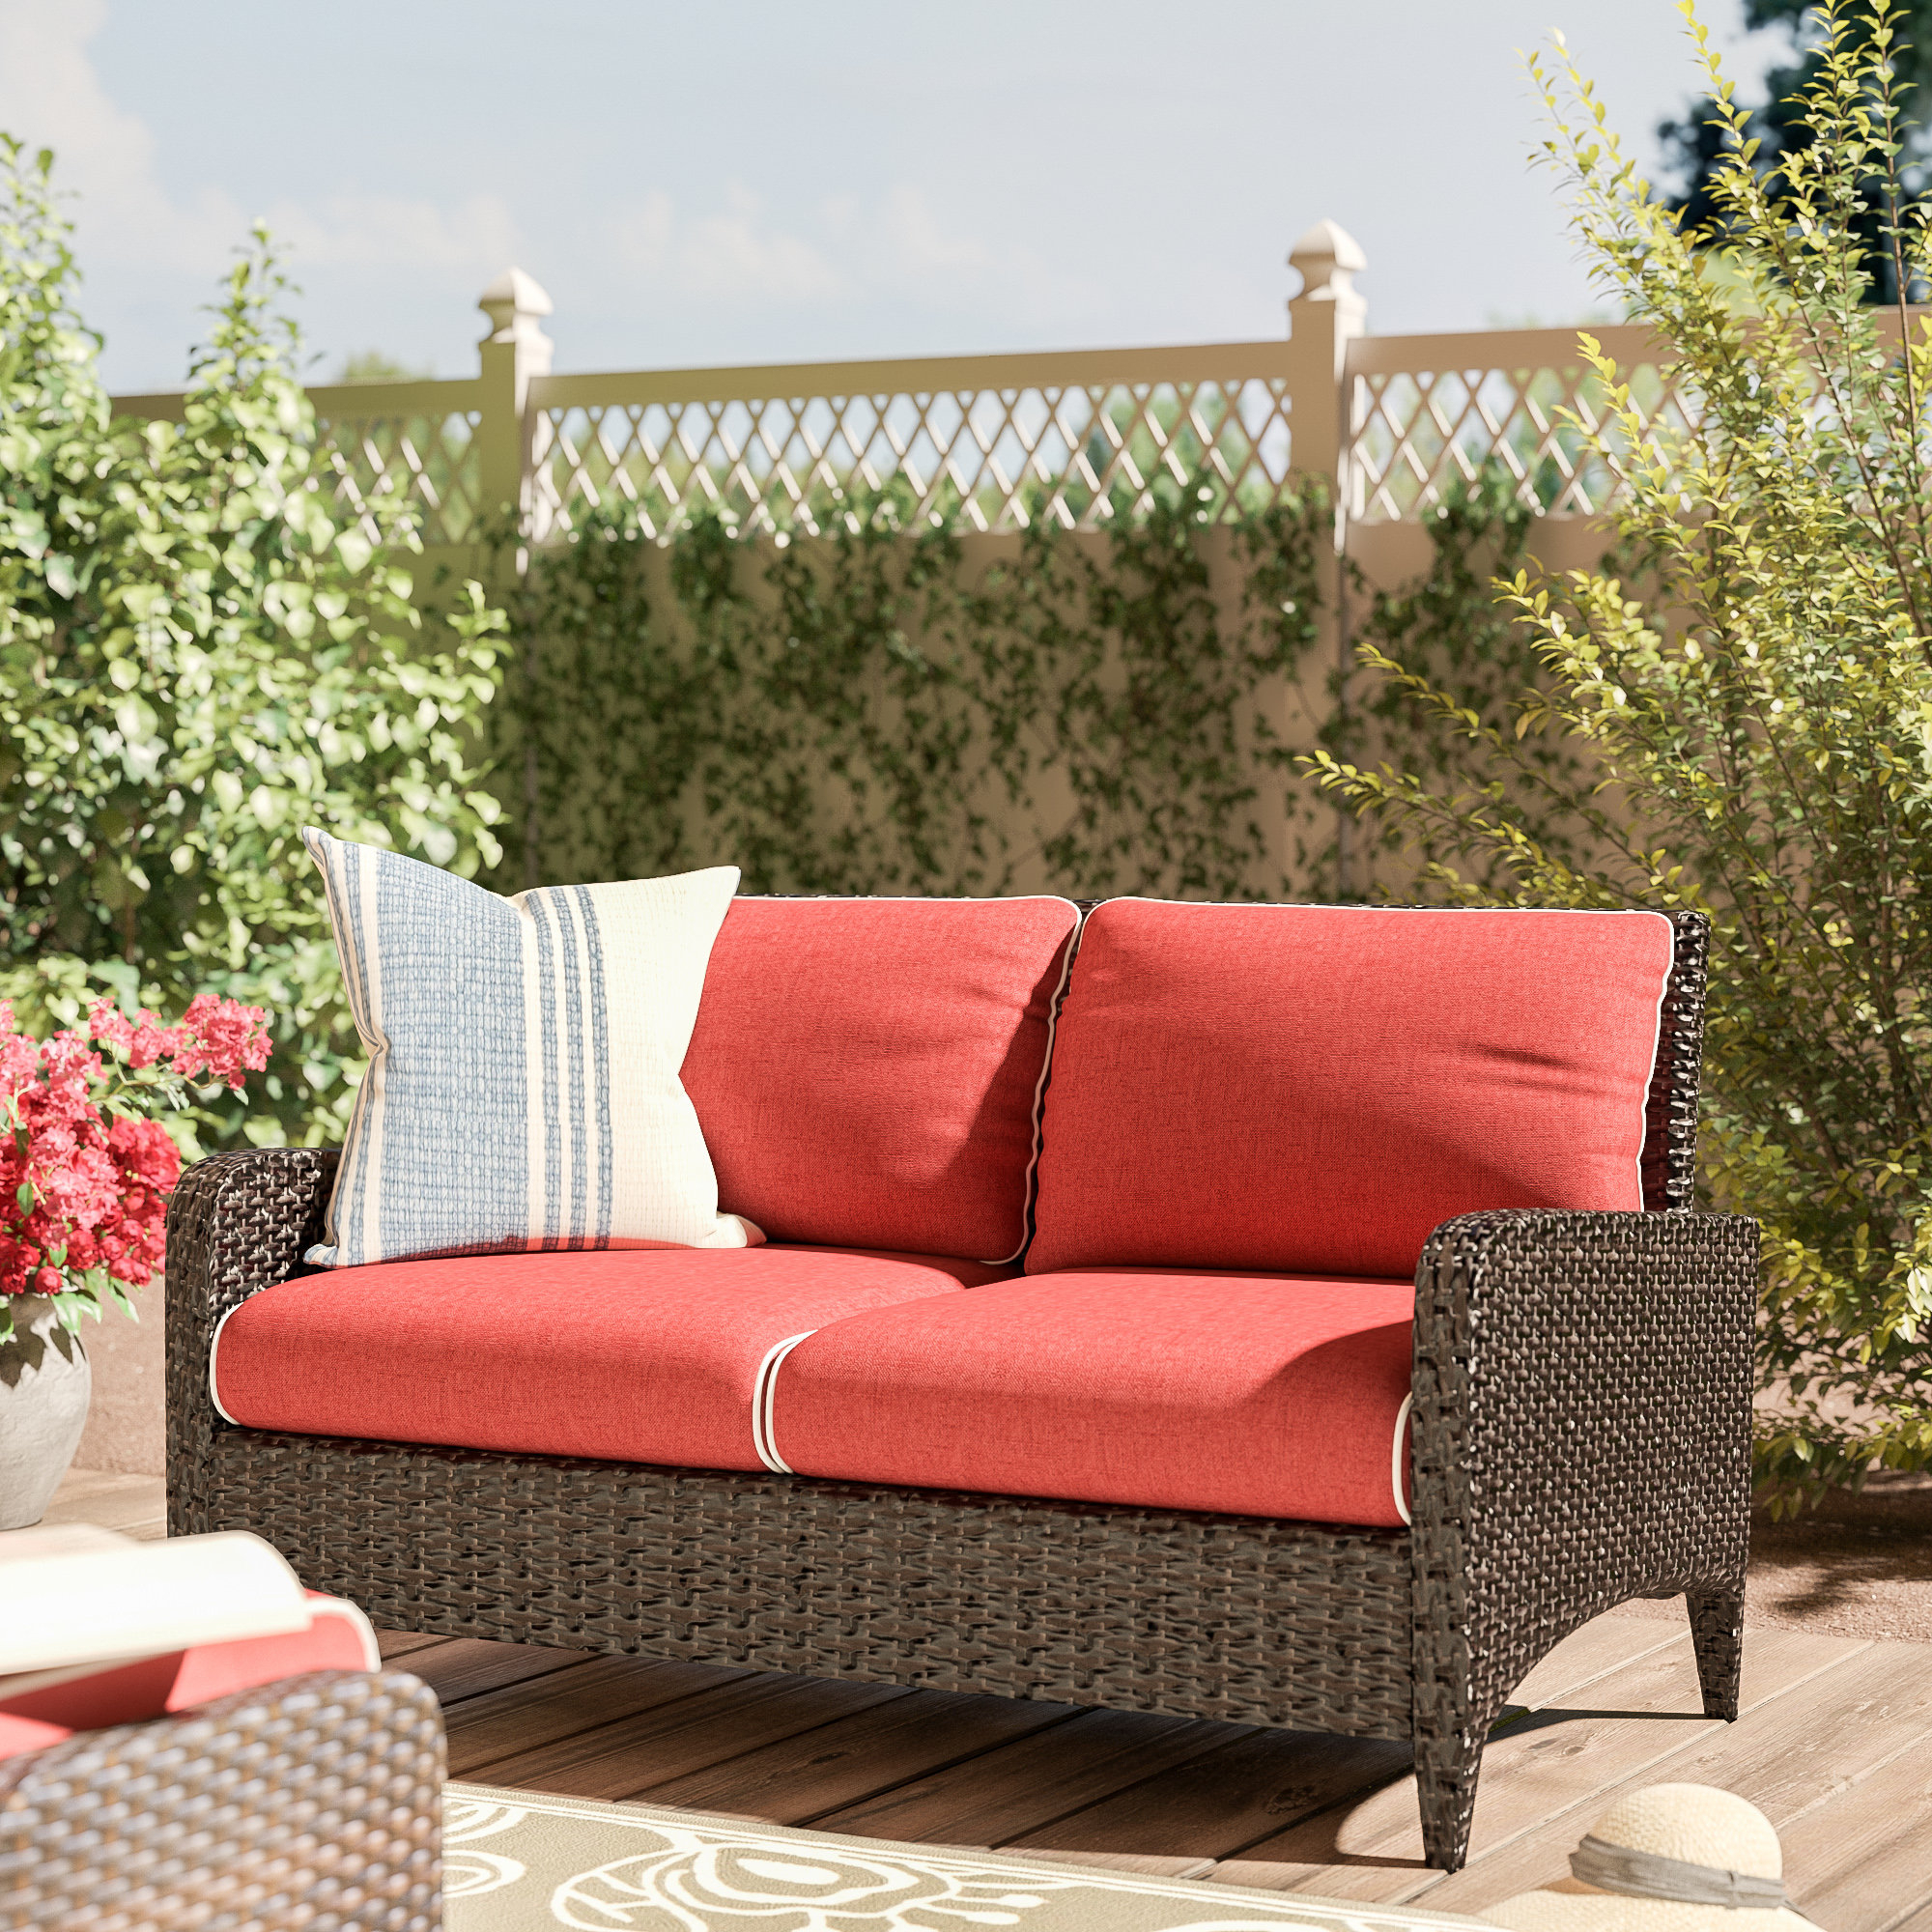 Most Popular Laverton Loveseats With Cushions With Regard To Patio Loveseat With Ottoman (View 20 of 20)